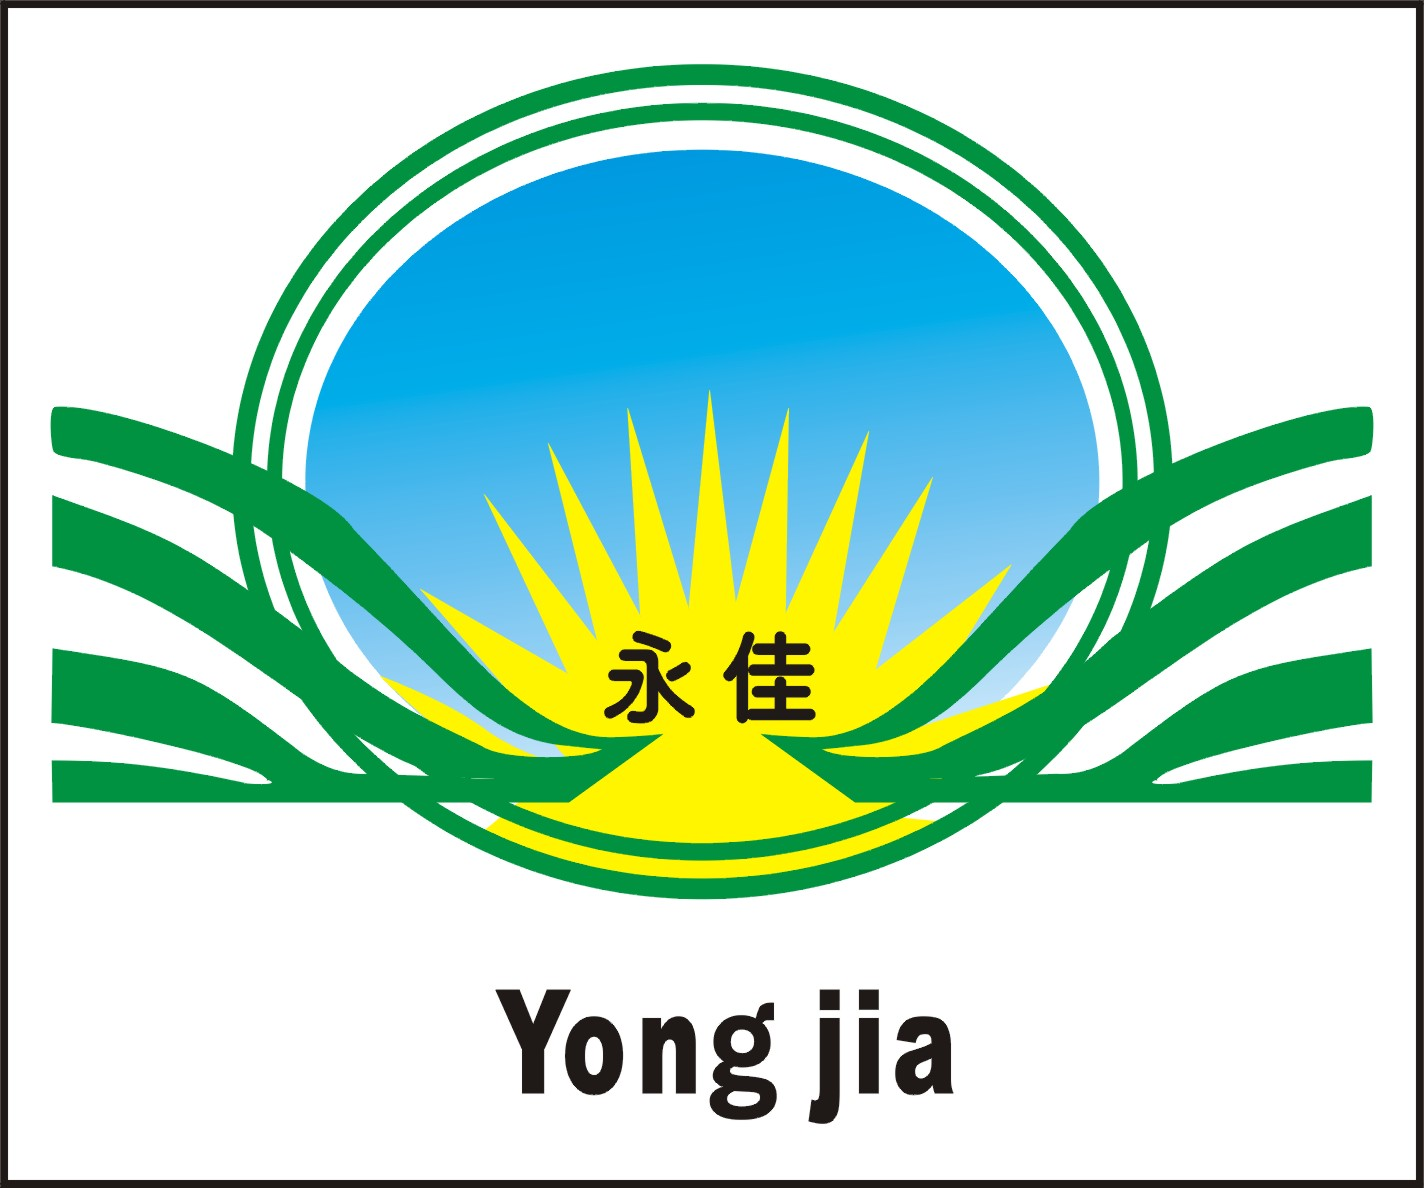 FUJIAN NINGDE YONGJIA TRADE CO.,LTD